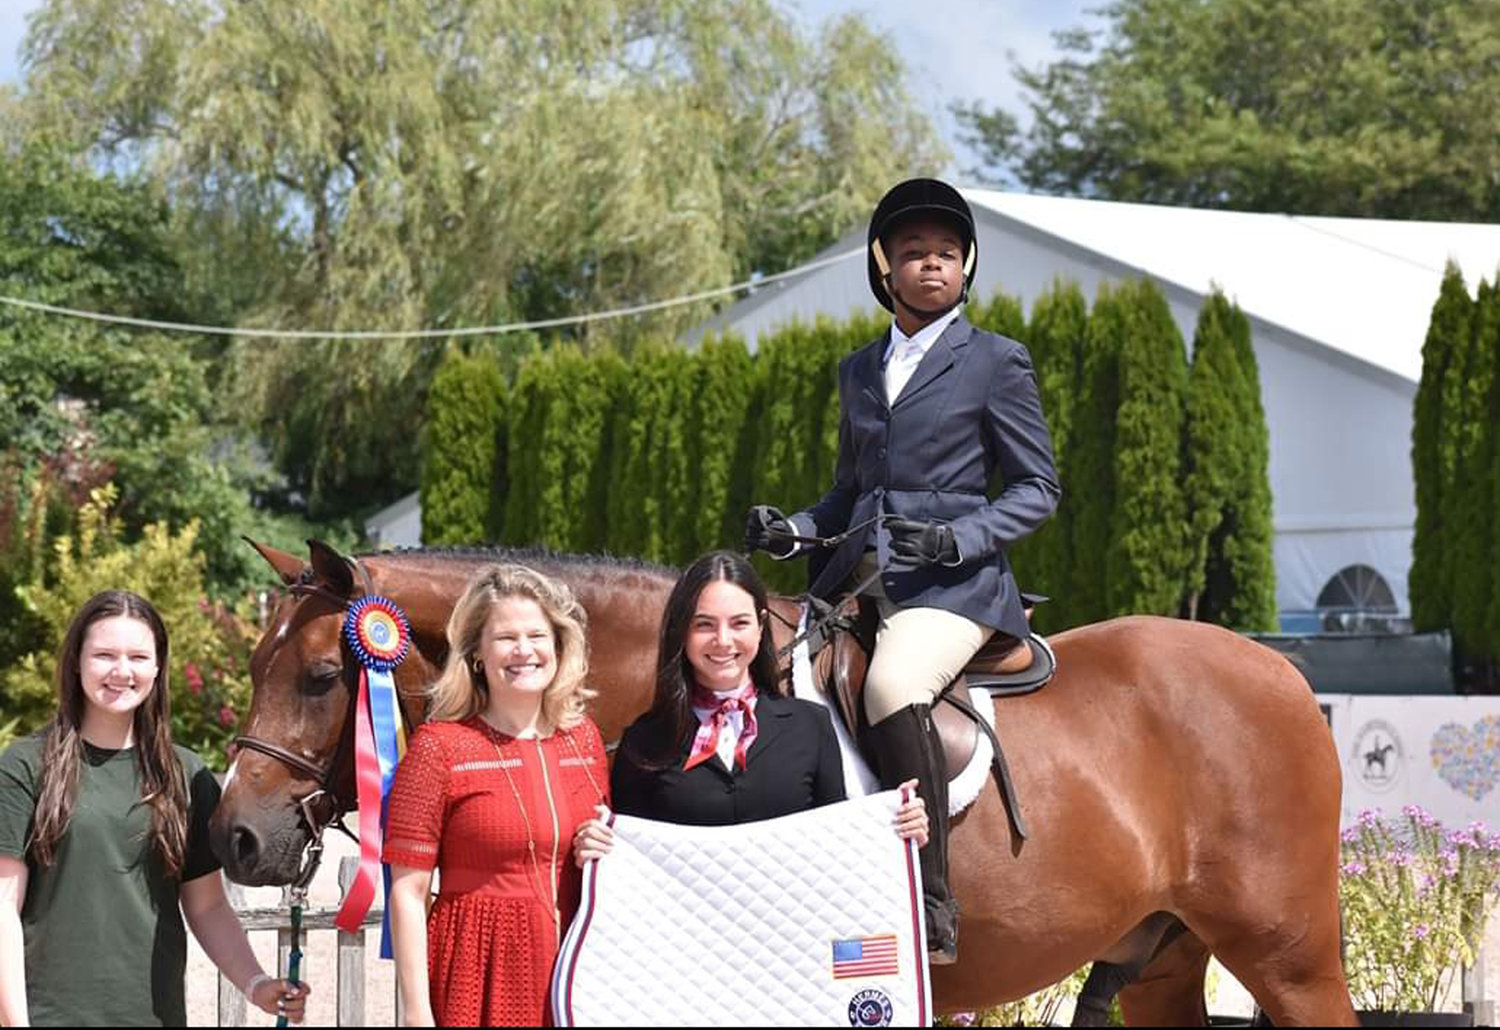 Malverne High School tenth grader Isaiah Forte won the grand championship for the Long Island Horse Show Series for Riders with Disabilities championship finals on Aug. 26.